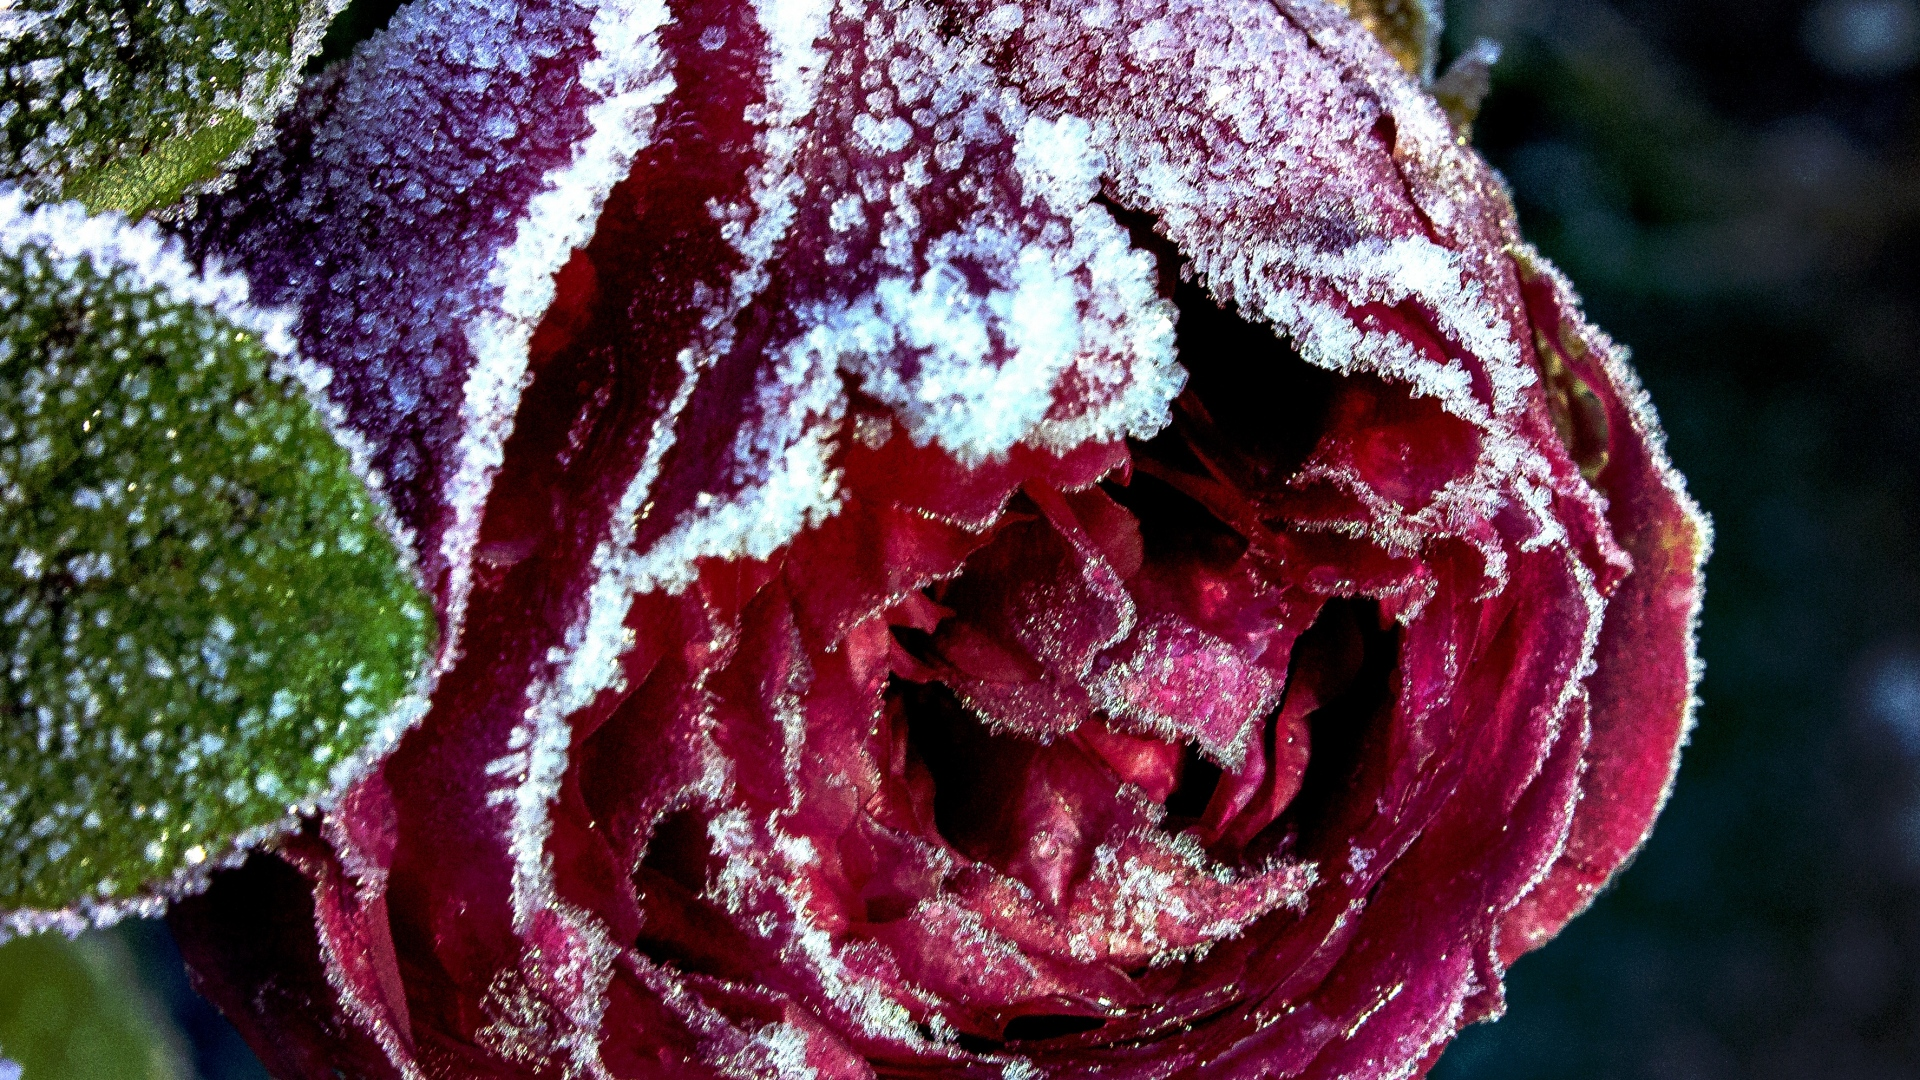 hd hintergrundbilder knospe frost close-up rose schnee 1920x1080